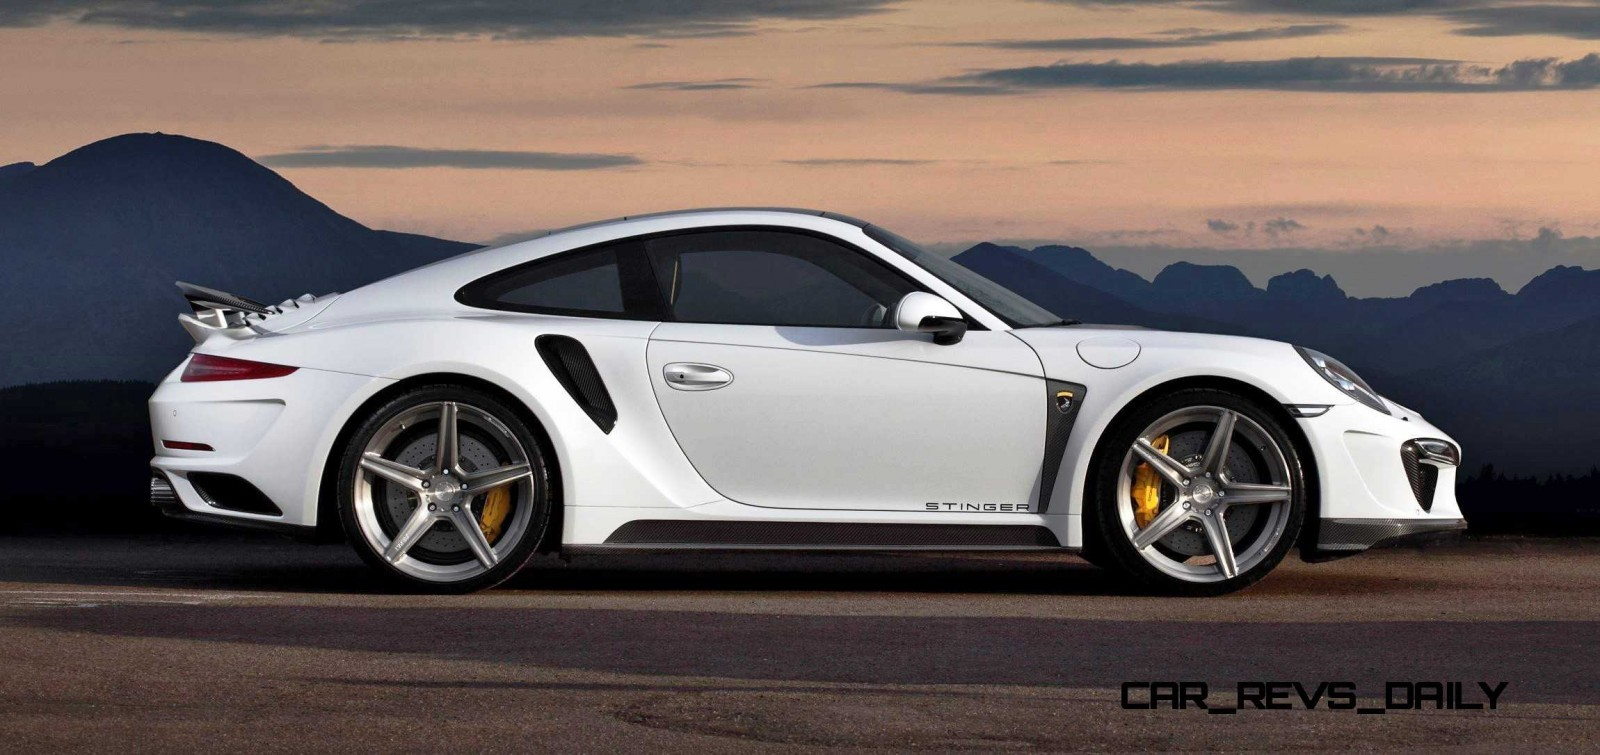 TOPCAR Stinger GTR 911 Turbo 11